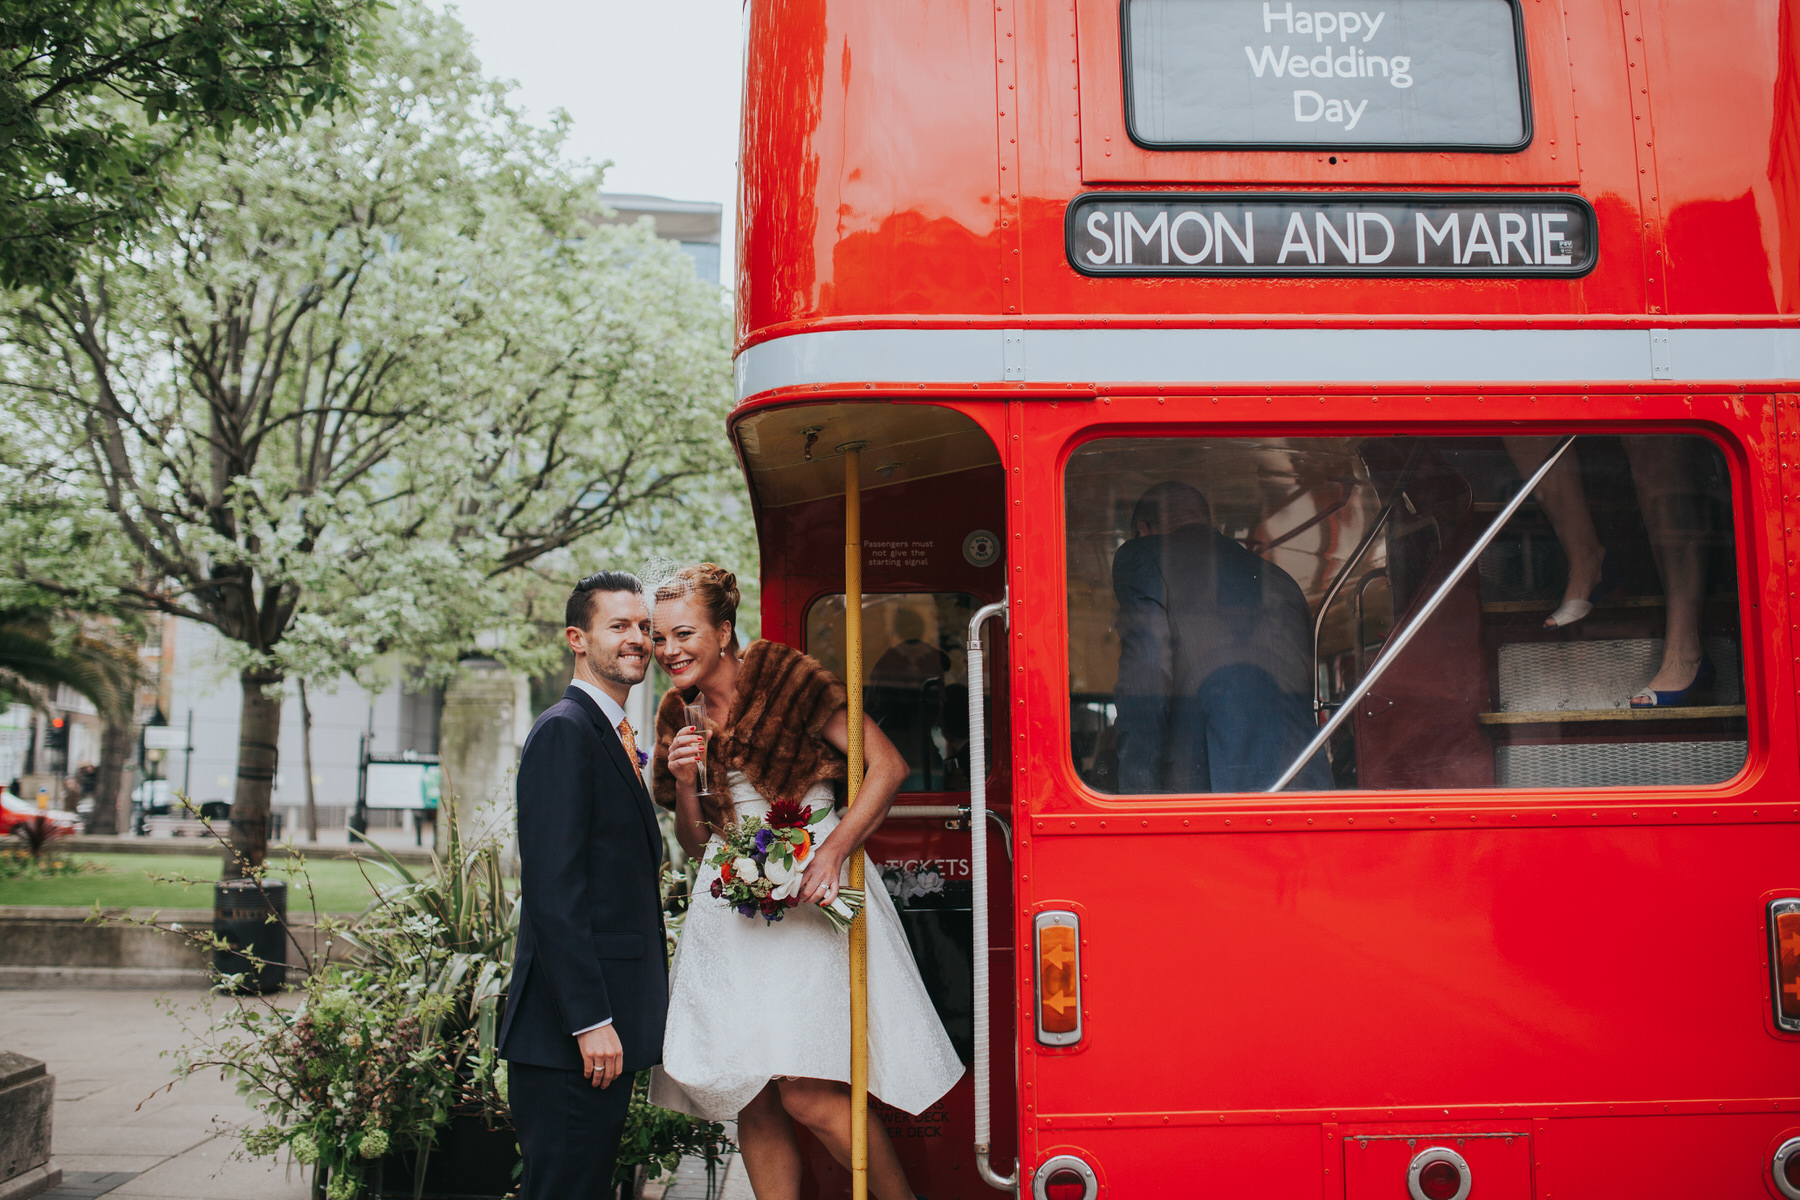 MS-Londesborough-Pub-wedding-Hackney-alternative-photographer-145-newly-married-bride-groom-drinking-bubbly-red-london-wedding-bus.jpg